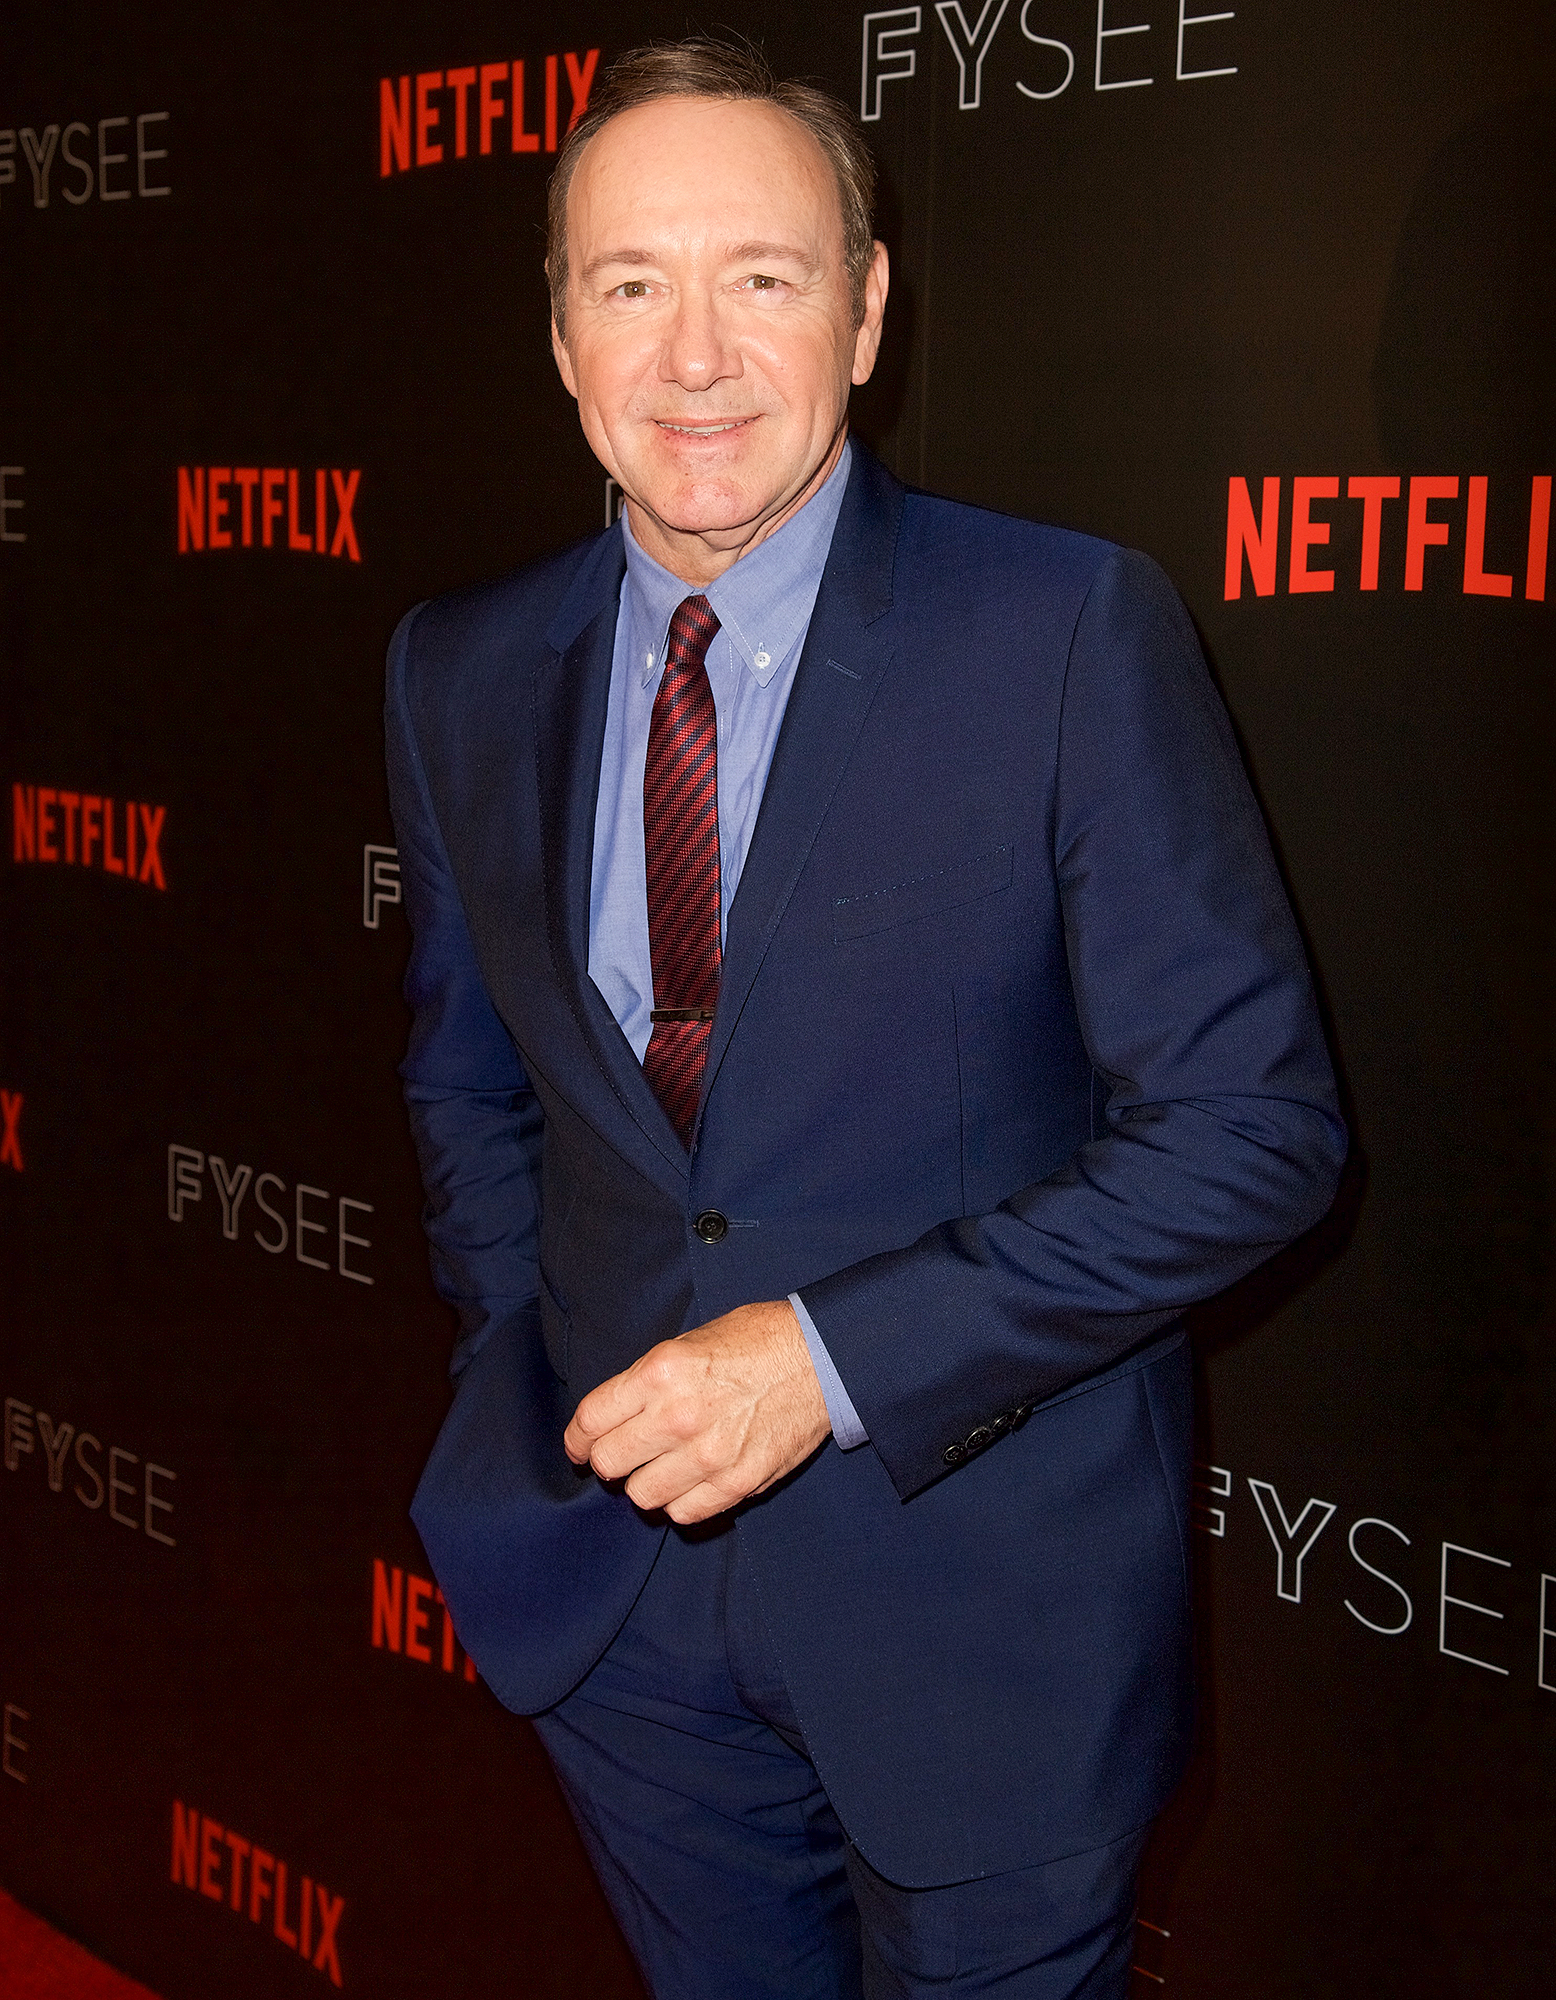 How damaged is kevin spacey after response to abuse allegations